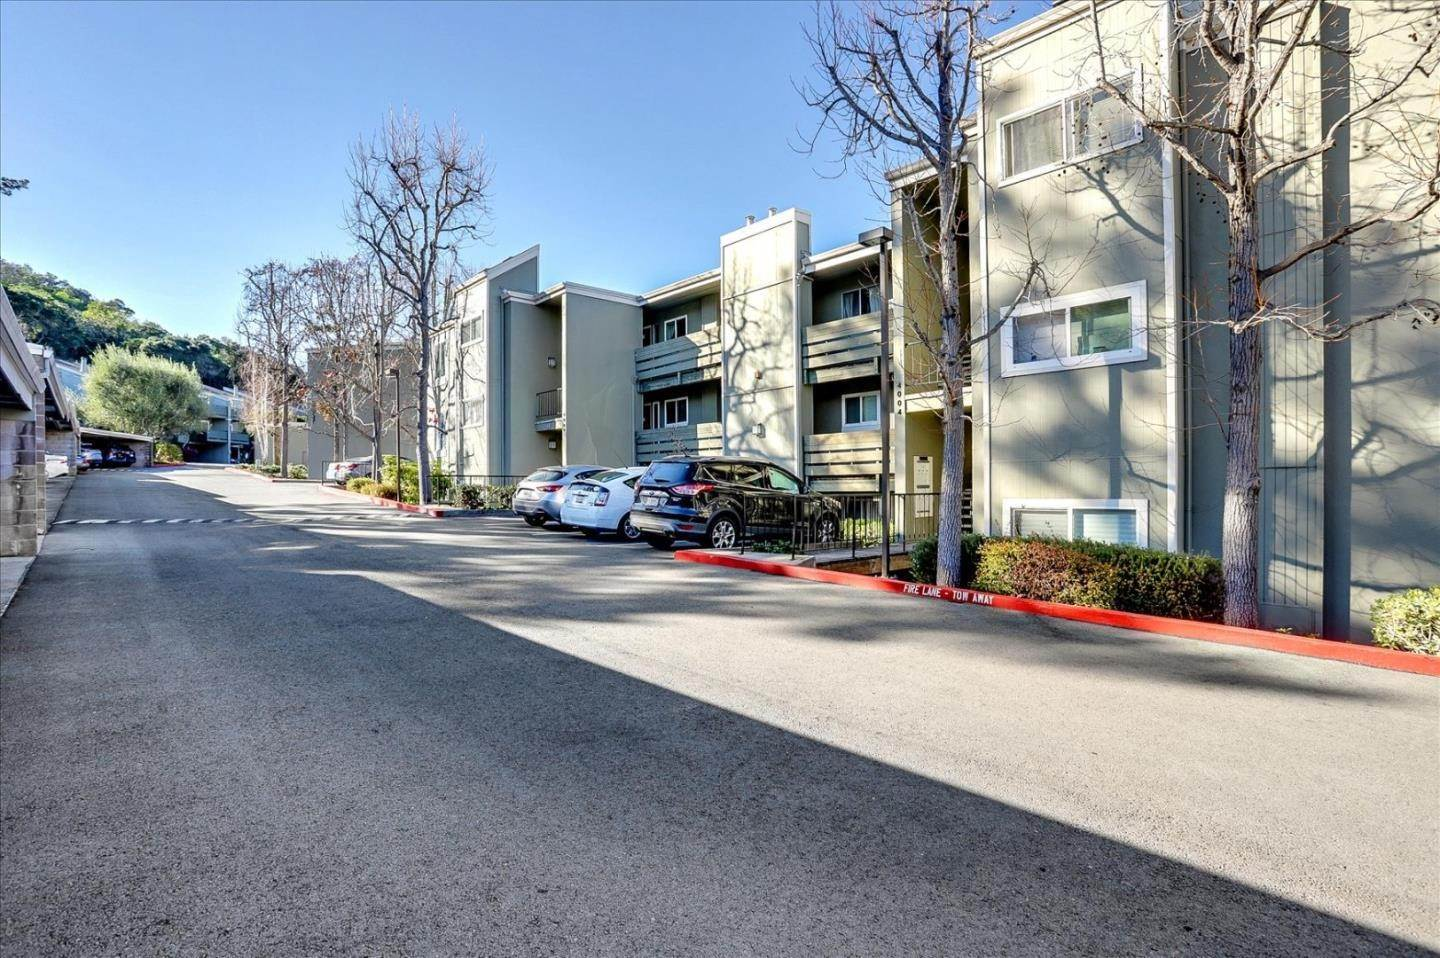 3. Condominiums for Sale at 4004 Farm Hill Boulevard Redwood City, California 94061 United States